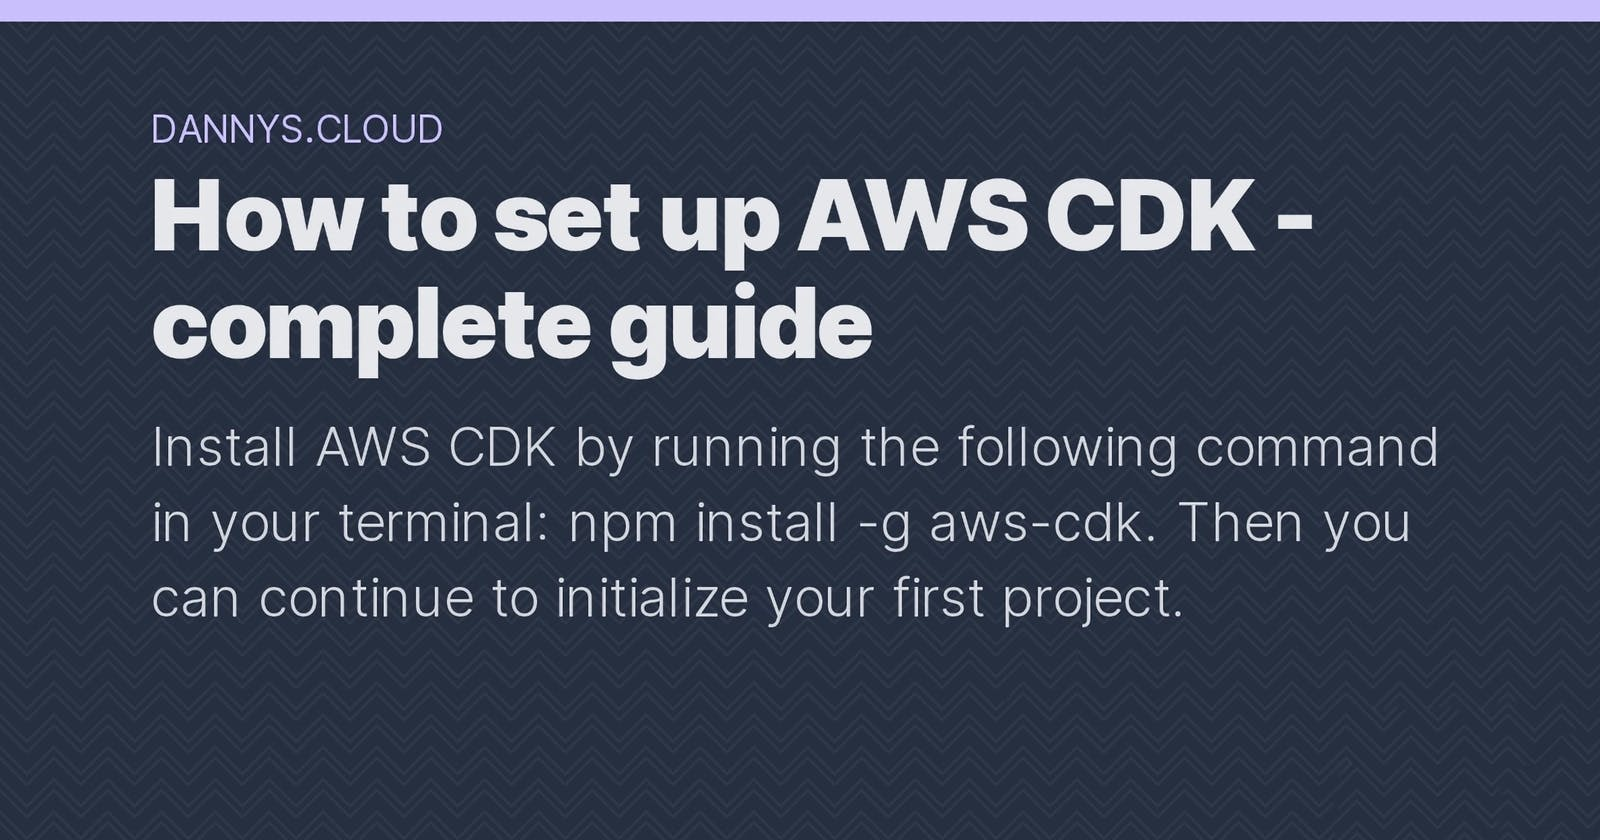 How to set up AWS CDK - complete guide